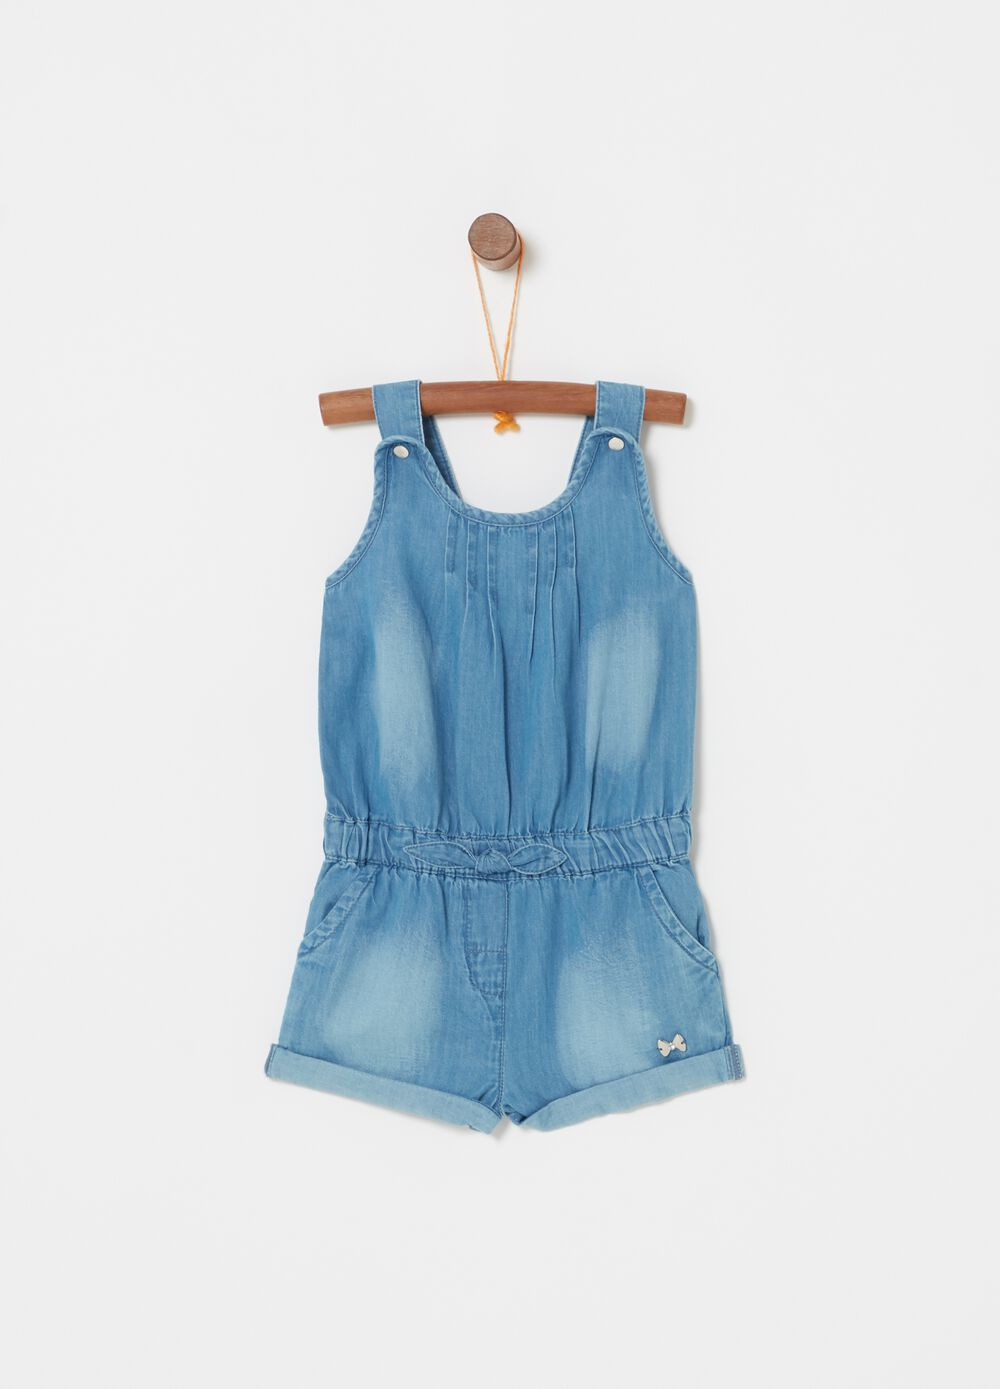 Salopette light denim con placchettina